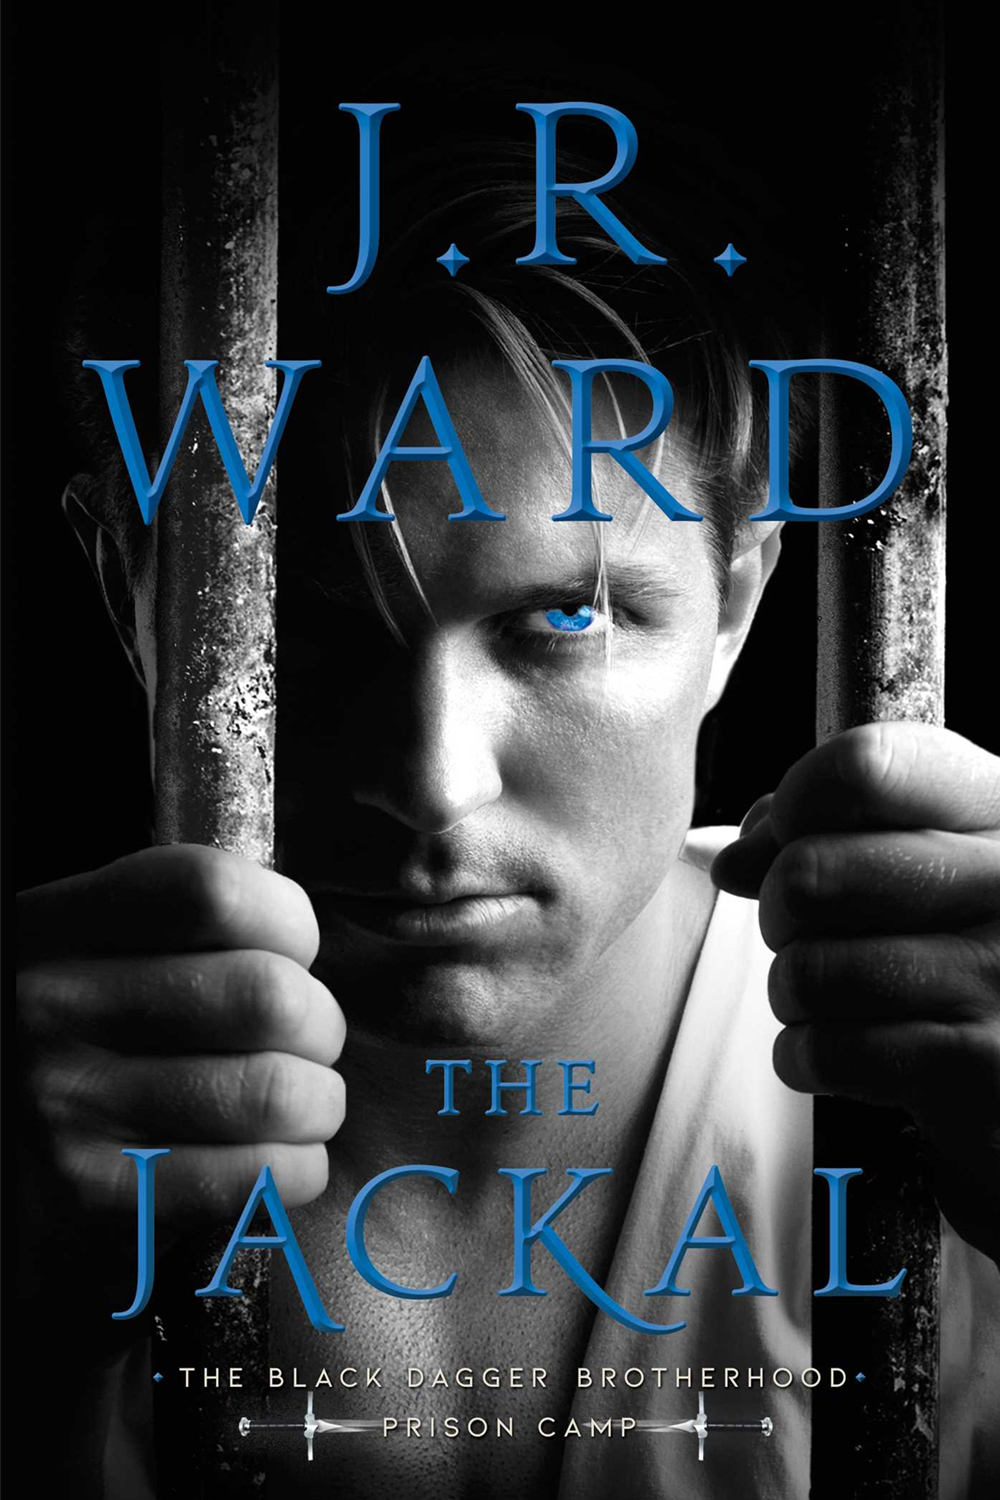 S1 E19 The Jackal by J.R. Ward + GIVEAWAY!